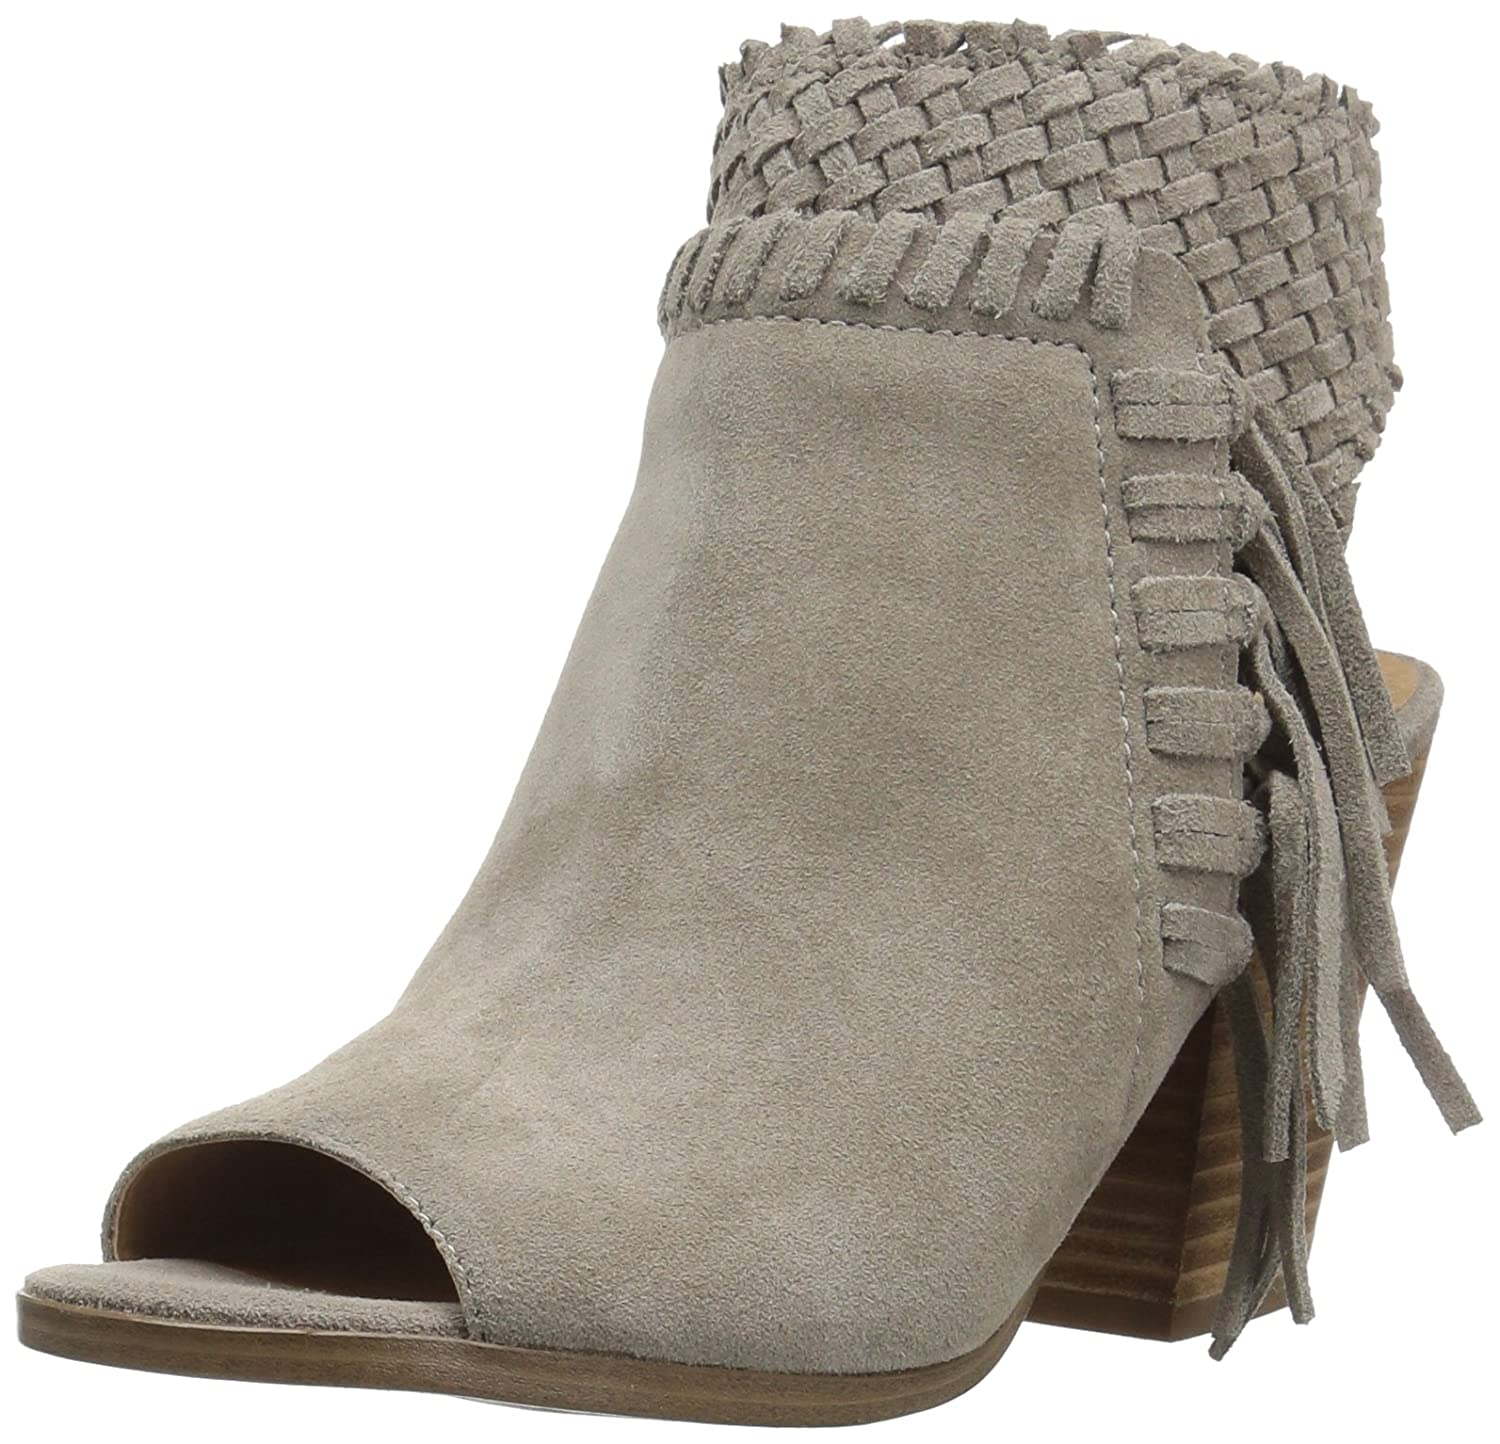 Lucky Brand Women's Ointlee Pump B01N6J6G7Z 6 B(M) US|Warm Stone